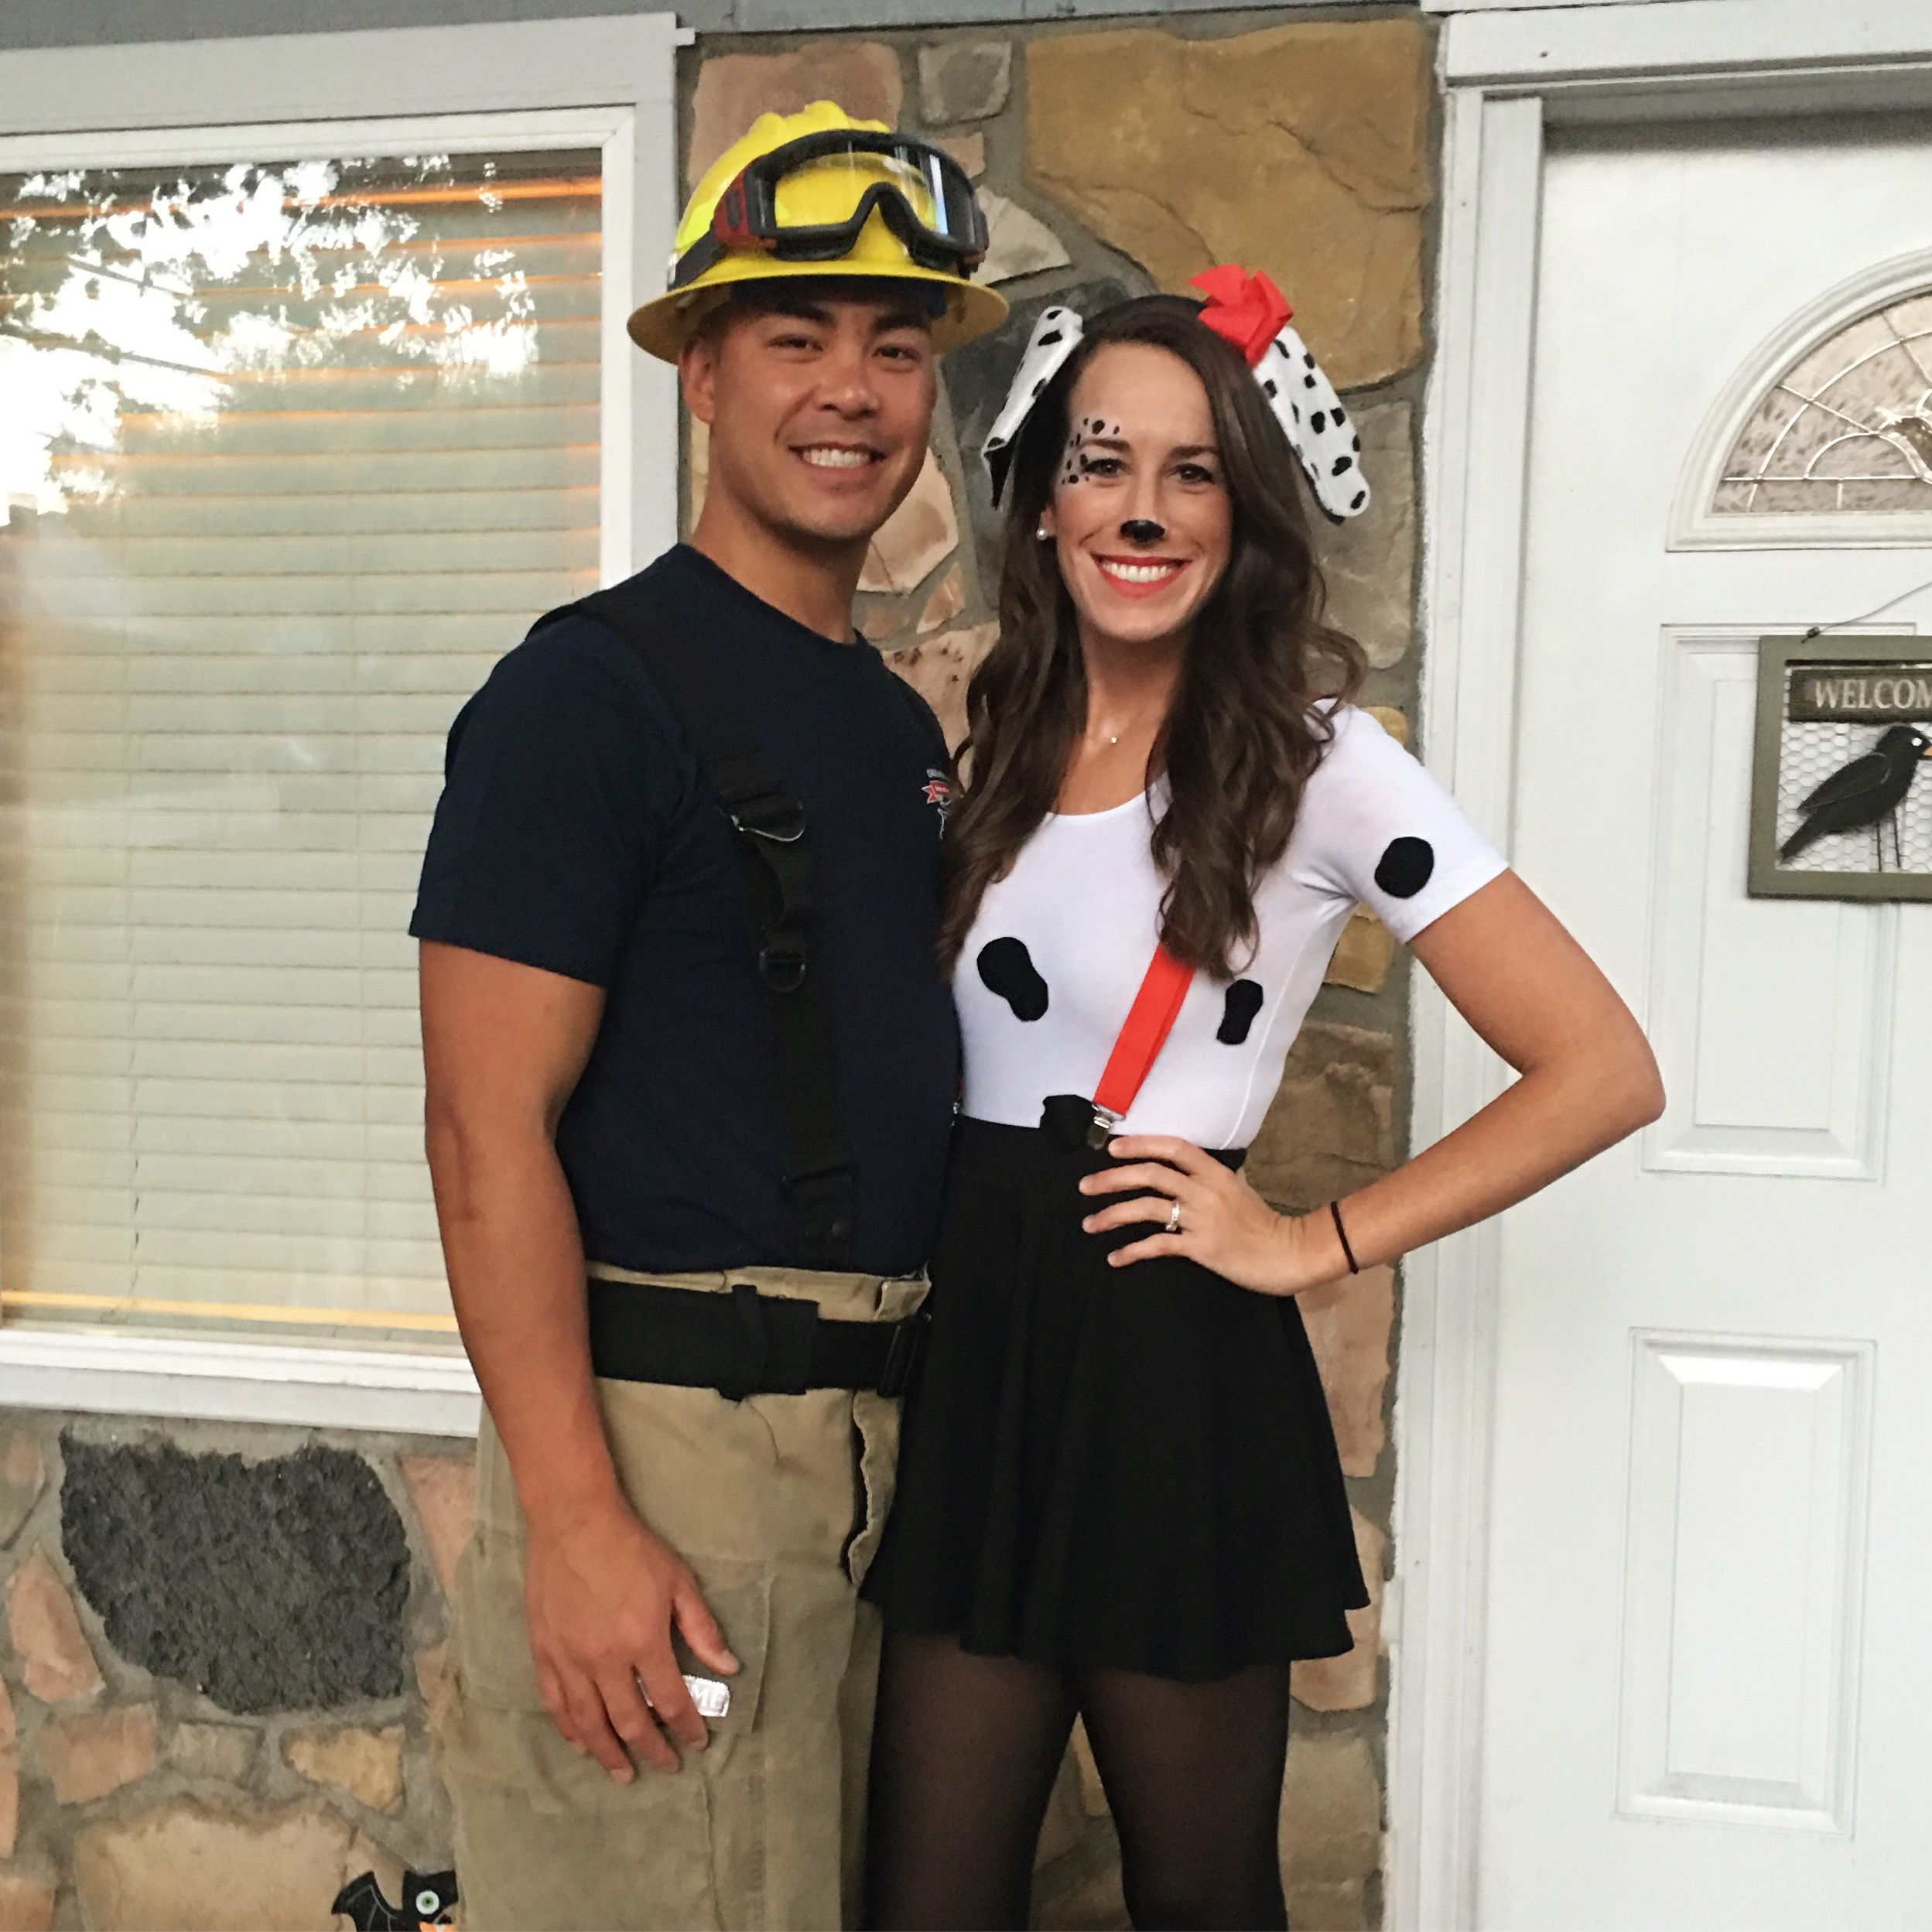 Couples costume firefighter and Dalmatian (all from